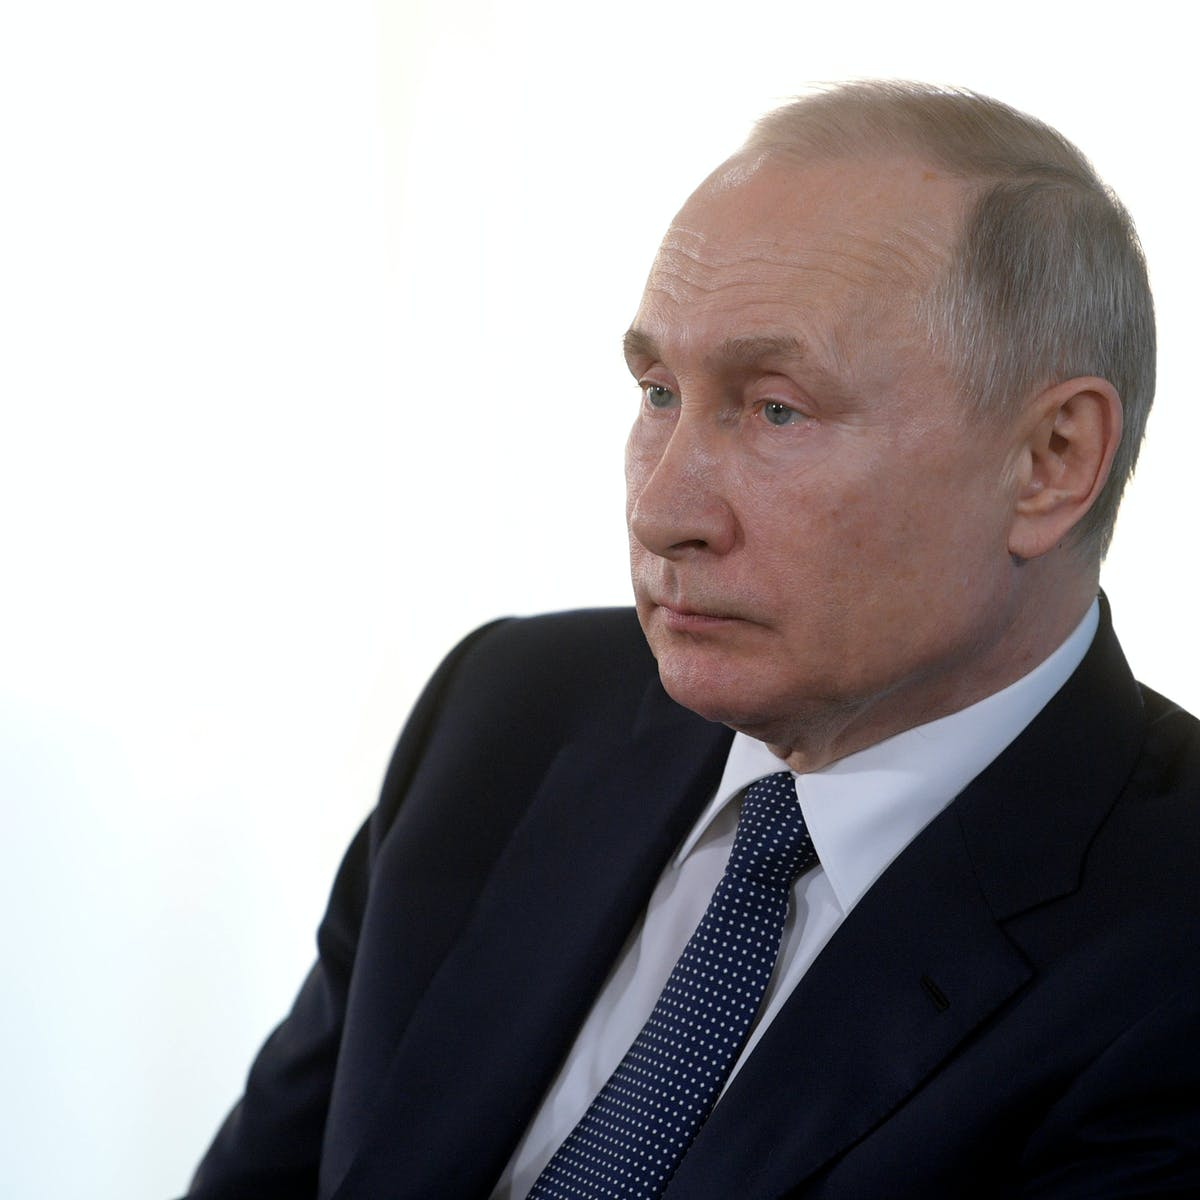 Vladimir Putin S Two Decades At The Helm Have Remade Russia And Its Place In The World